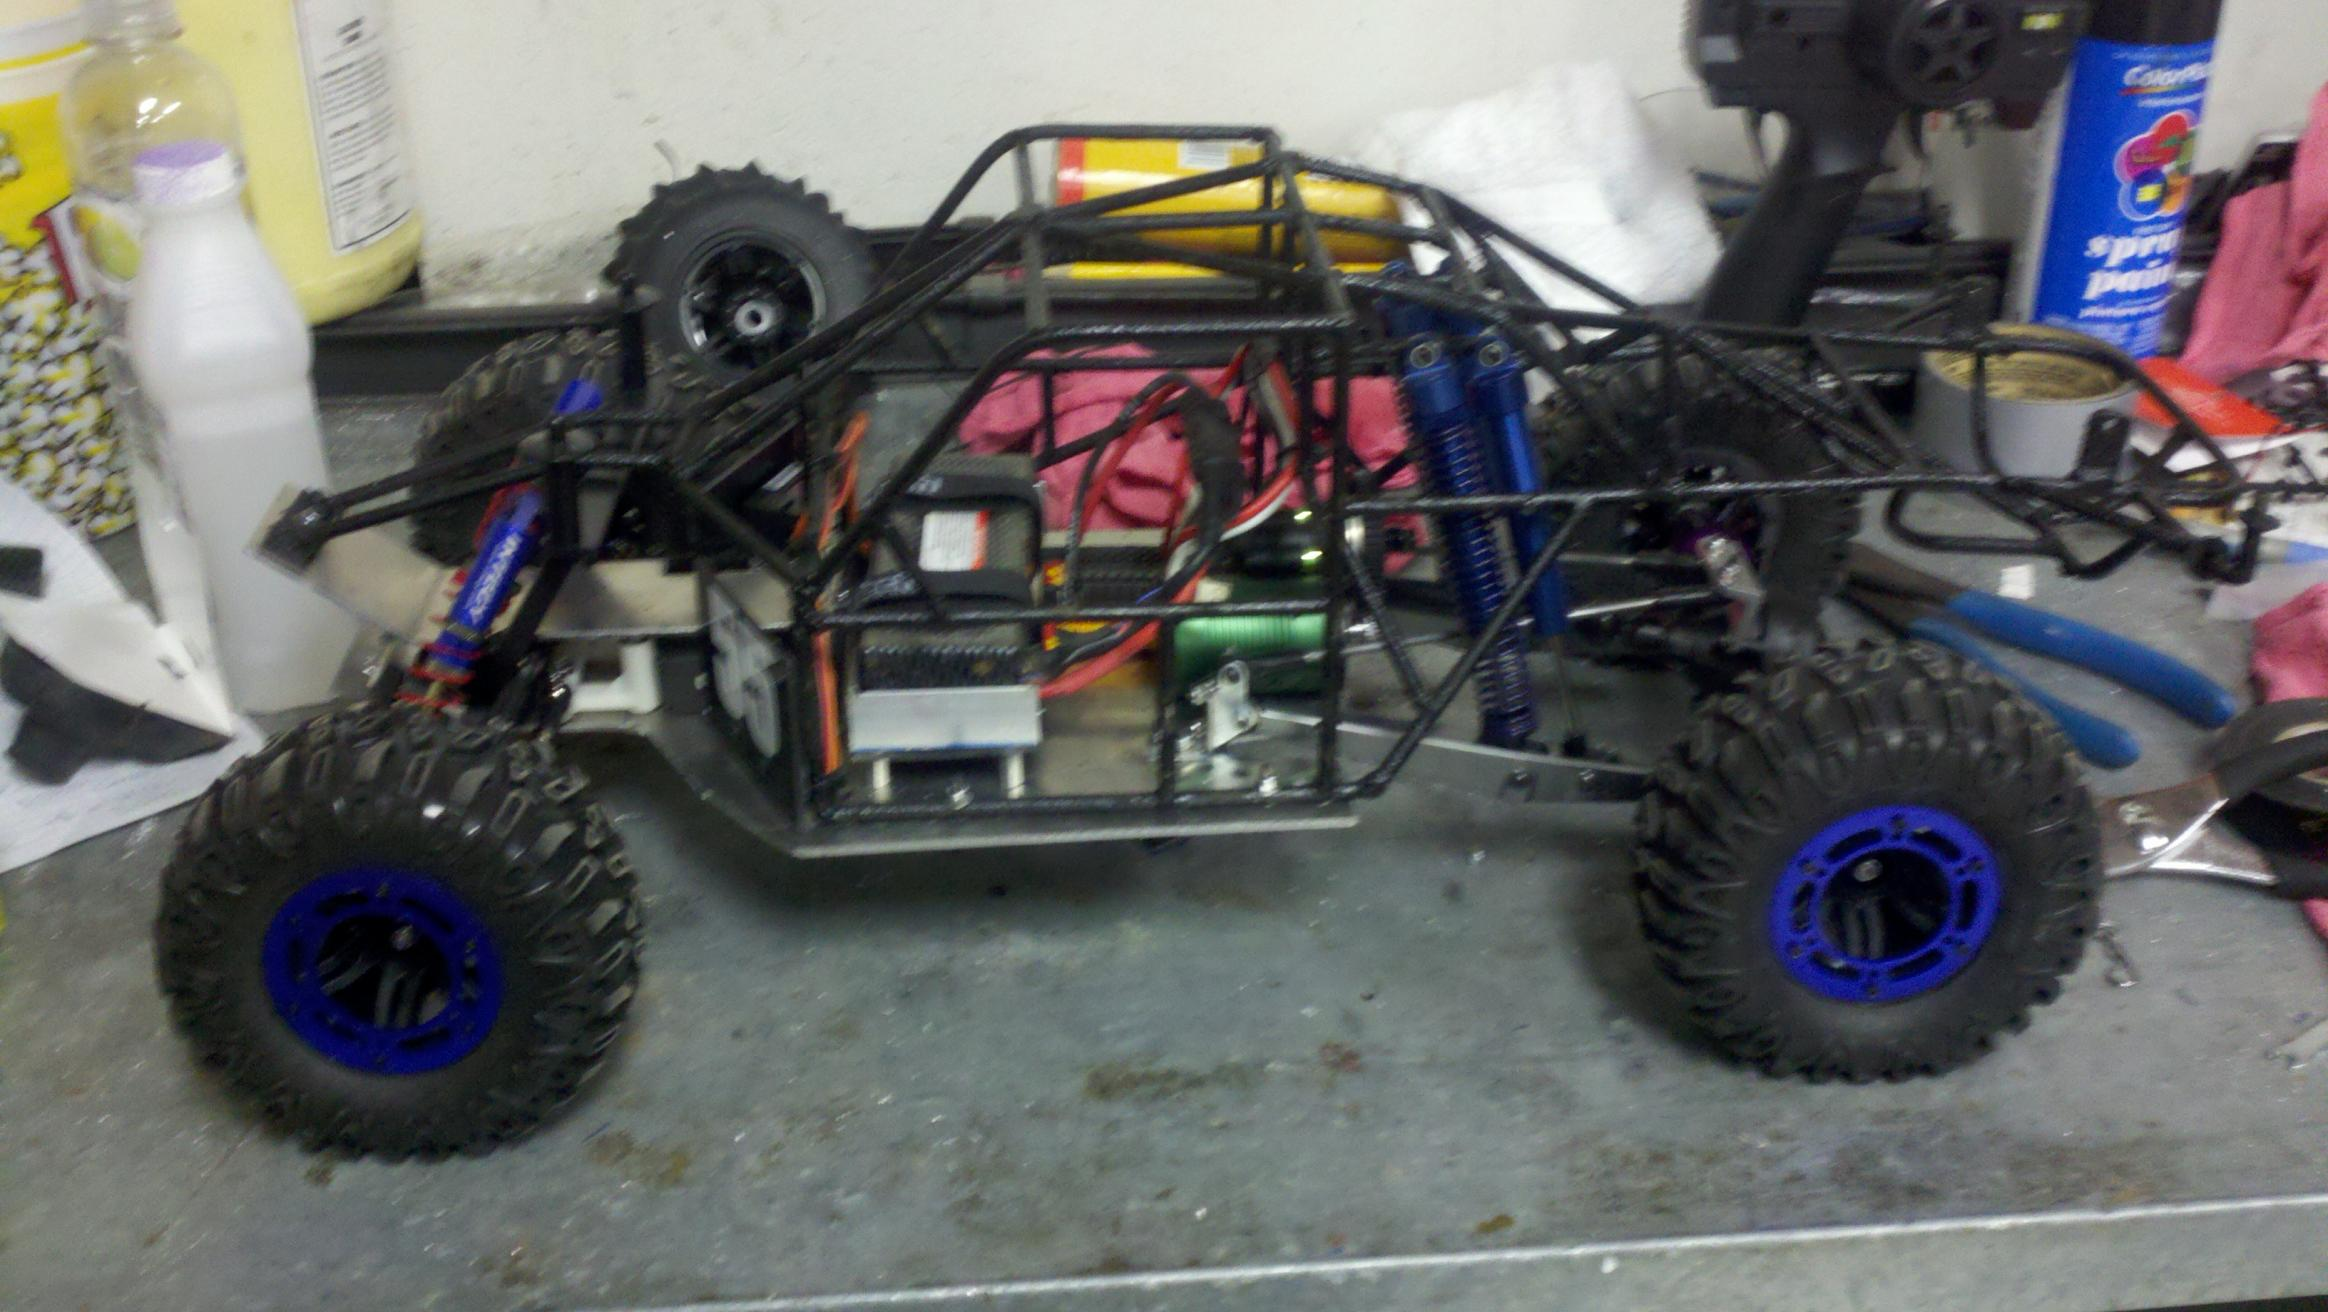 electric rc truck with 485513 Custom 1 8 Trophy Truck Built on Rc111 moreover Watch as well Watch moreover Watch additionally 485513 Custom 1 8 Trophy Truck Built.